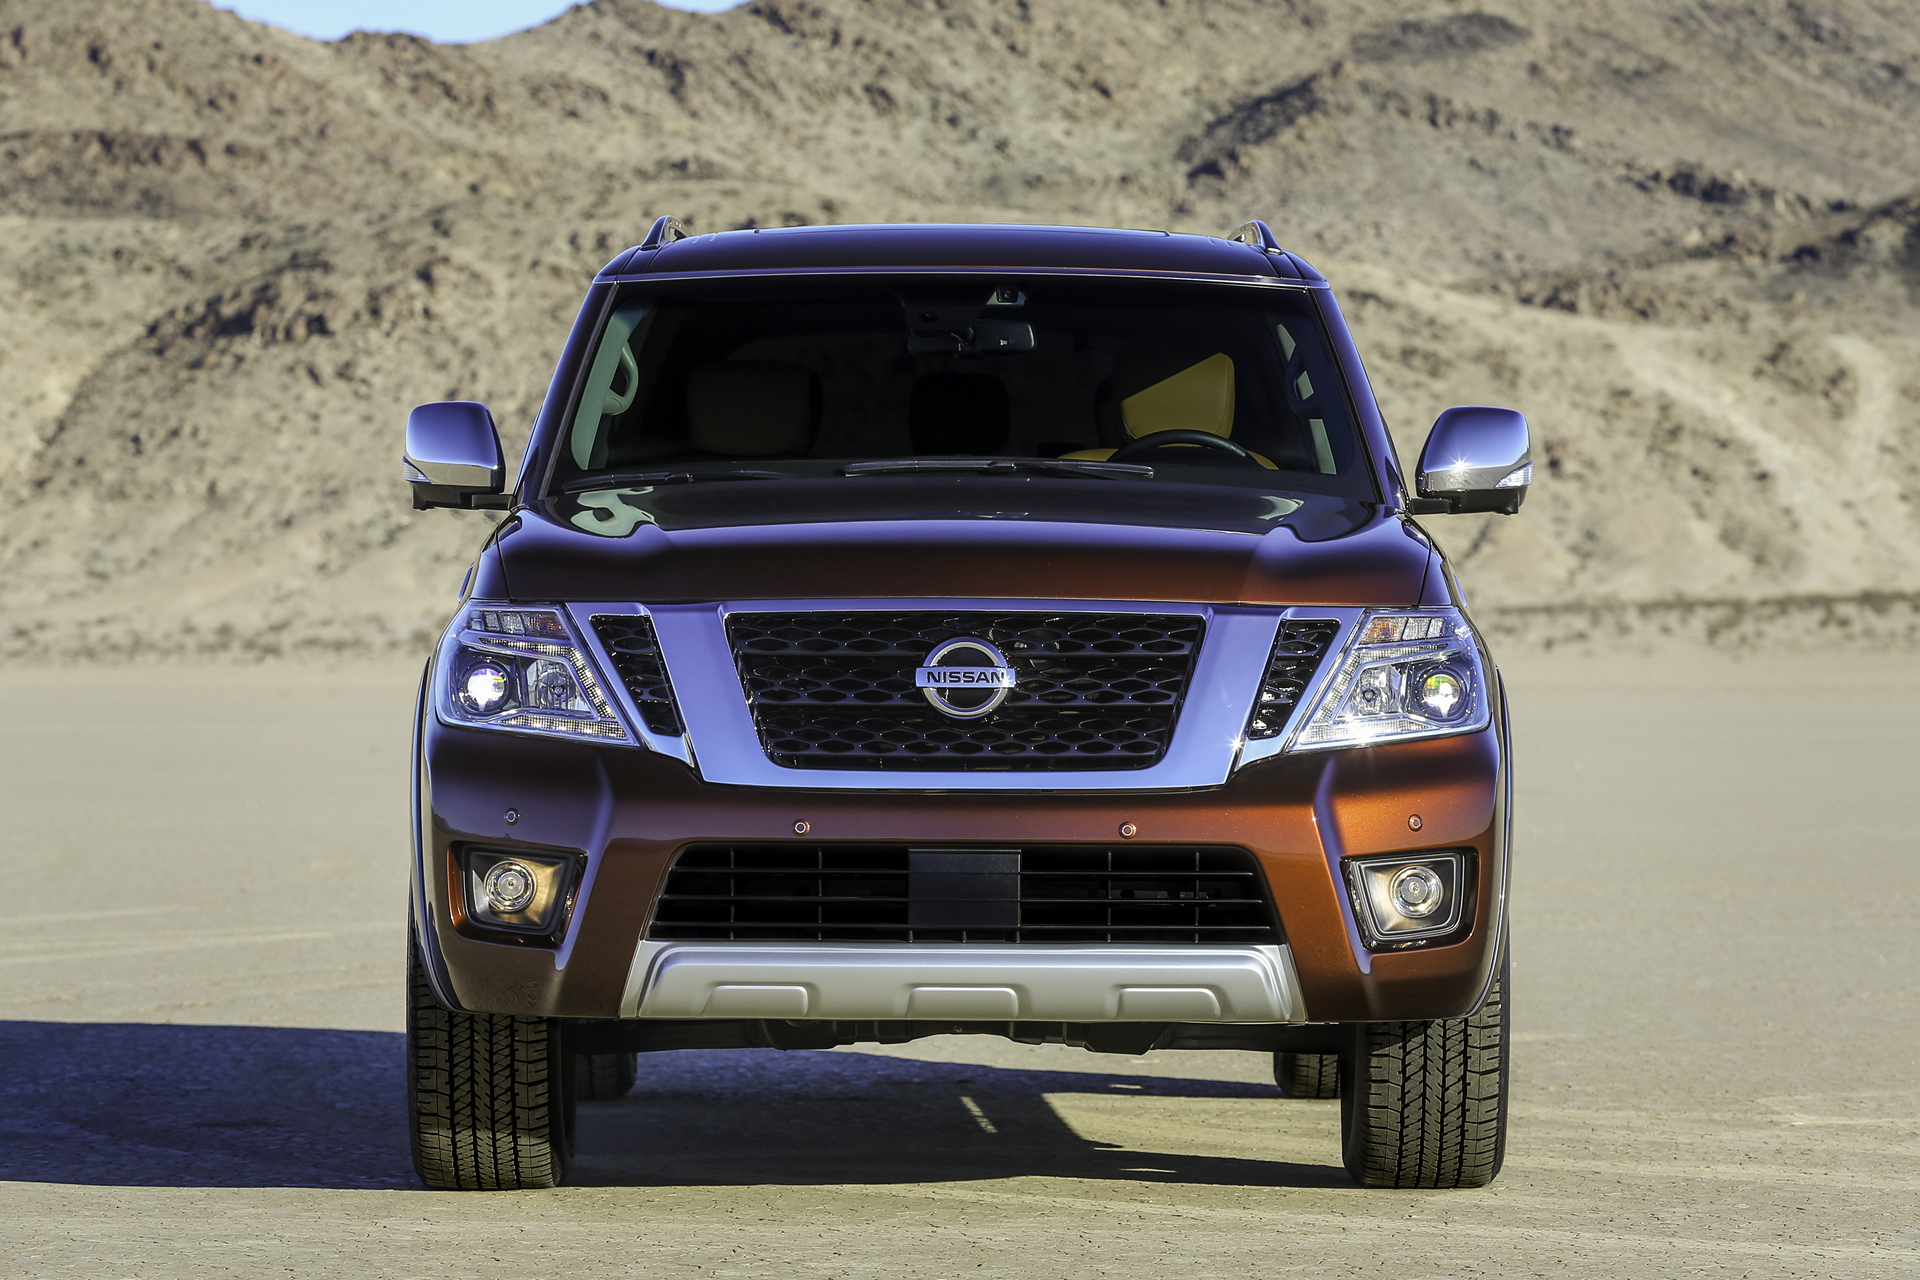 2017 Nissan Armada © Nissan Motor Co., Ltd.